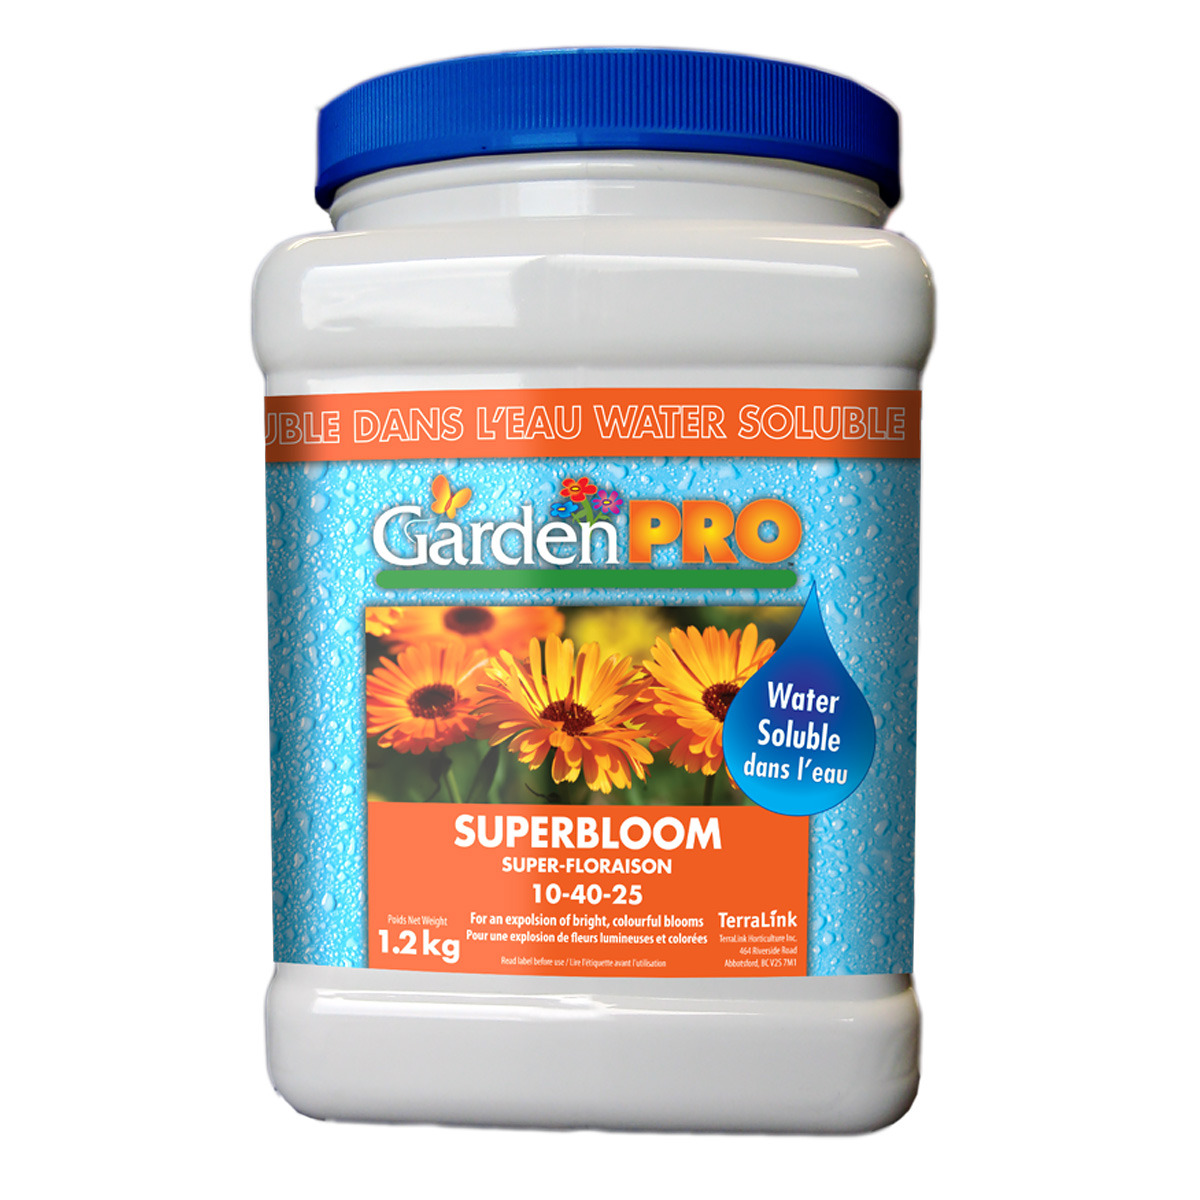 Garden Pro Water Soluble Superbloom Fertilizer 10-40-25